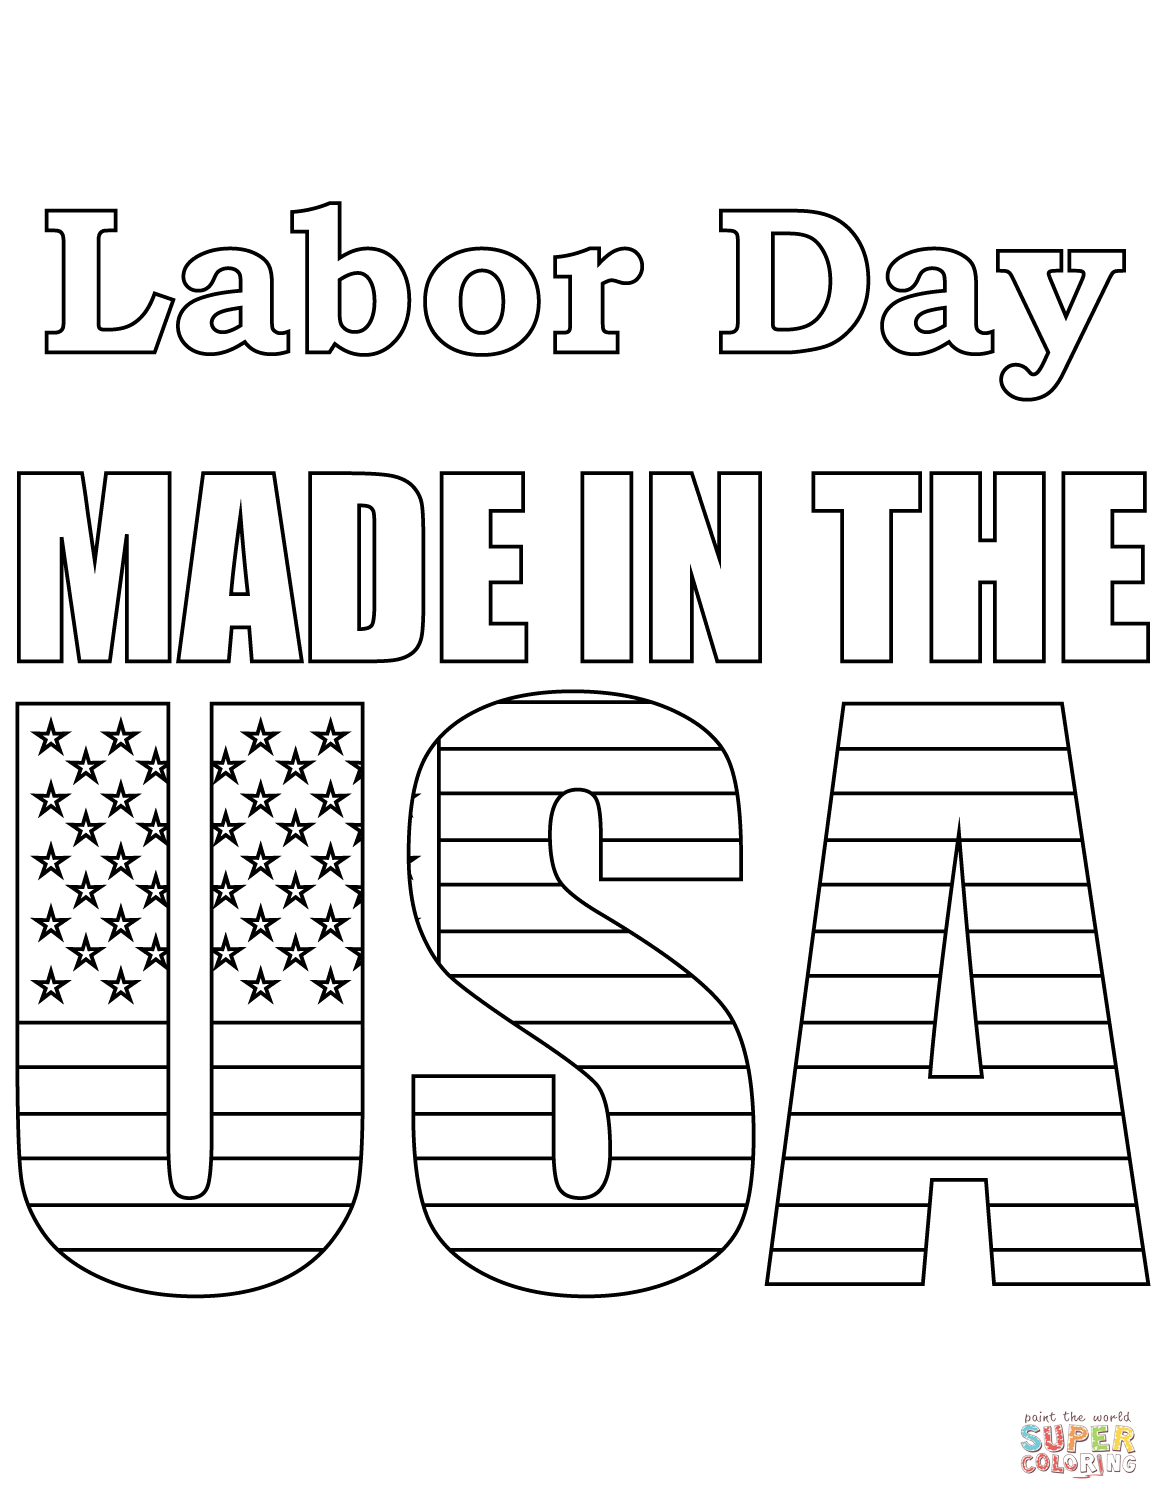 labor day coloring pages free printable labor day coloring pages to download and print for free coloring labor pages day printable free